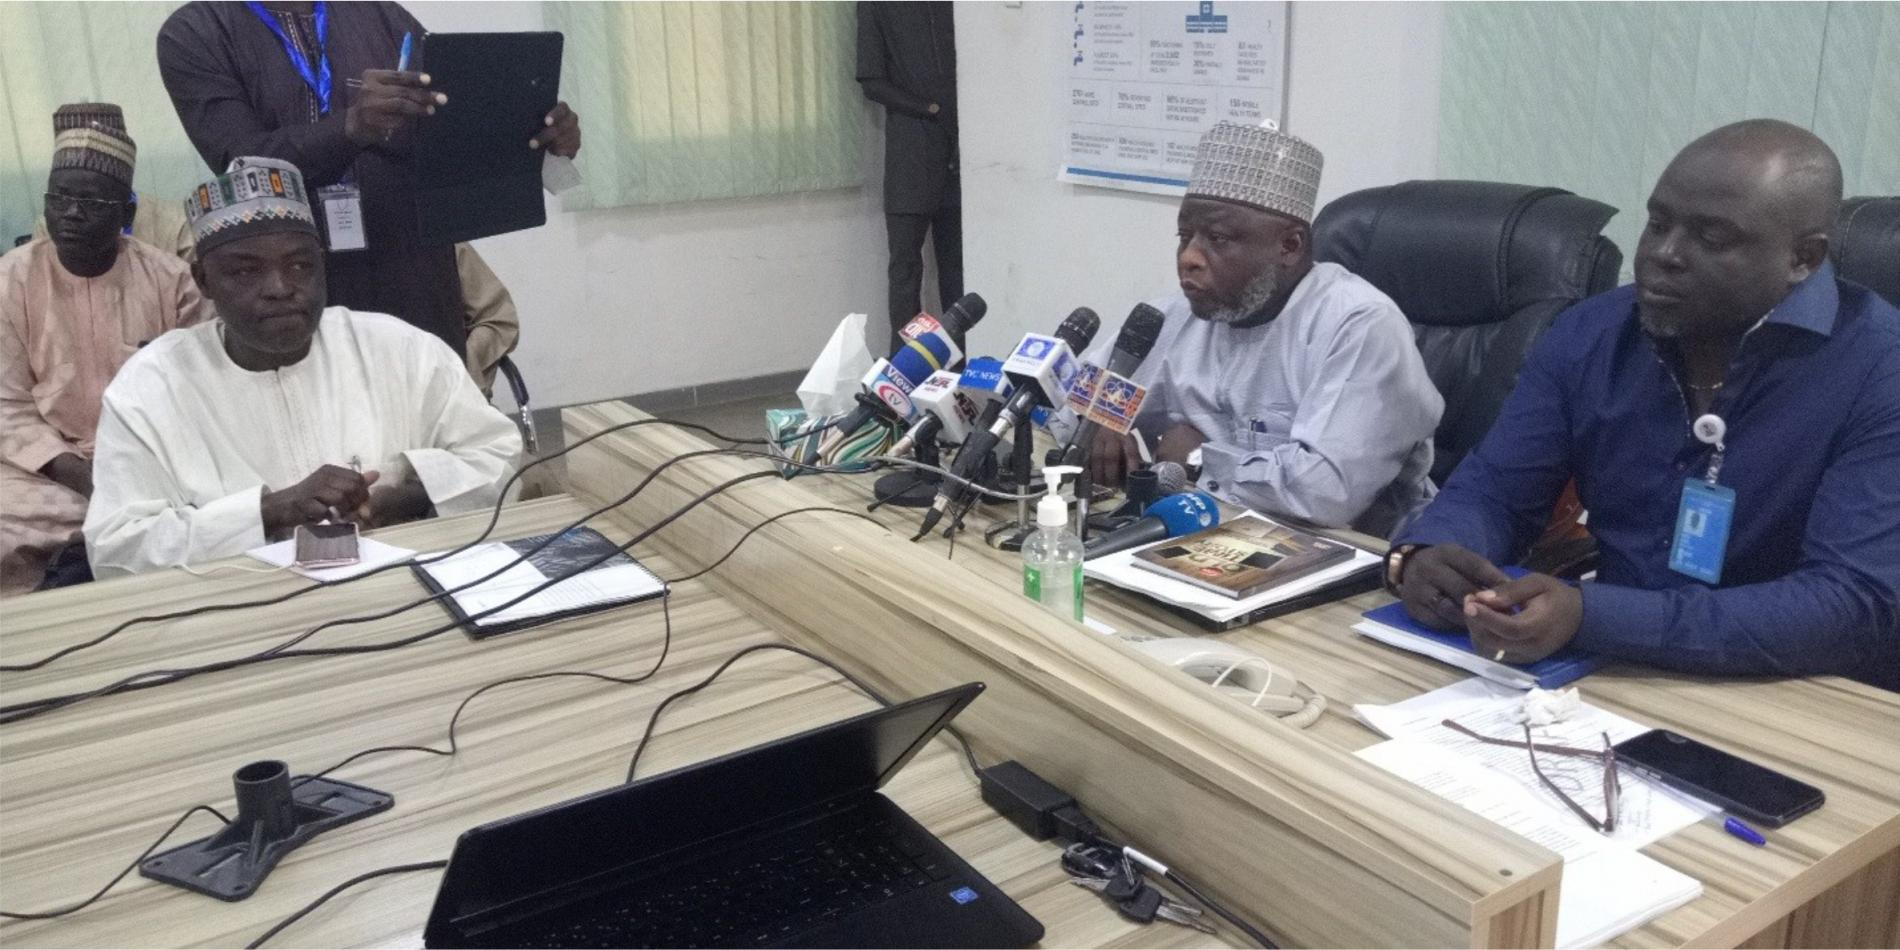 Borno Commissioner for Health and WHO Emergency Manager Dr. Owili in a Press briefing on COVID-19 Maiduguri. Photo_WHO_C. Onuekwe.jpg